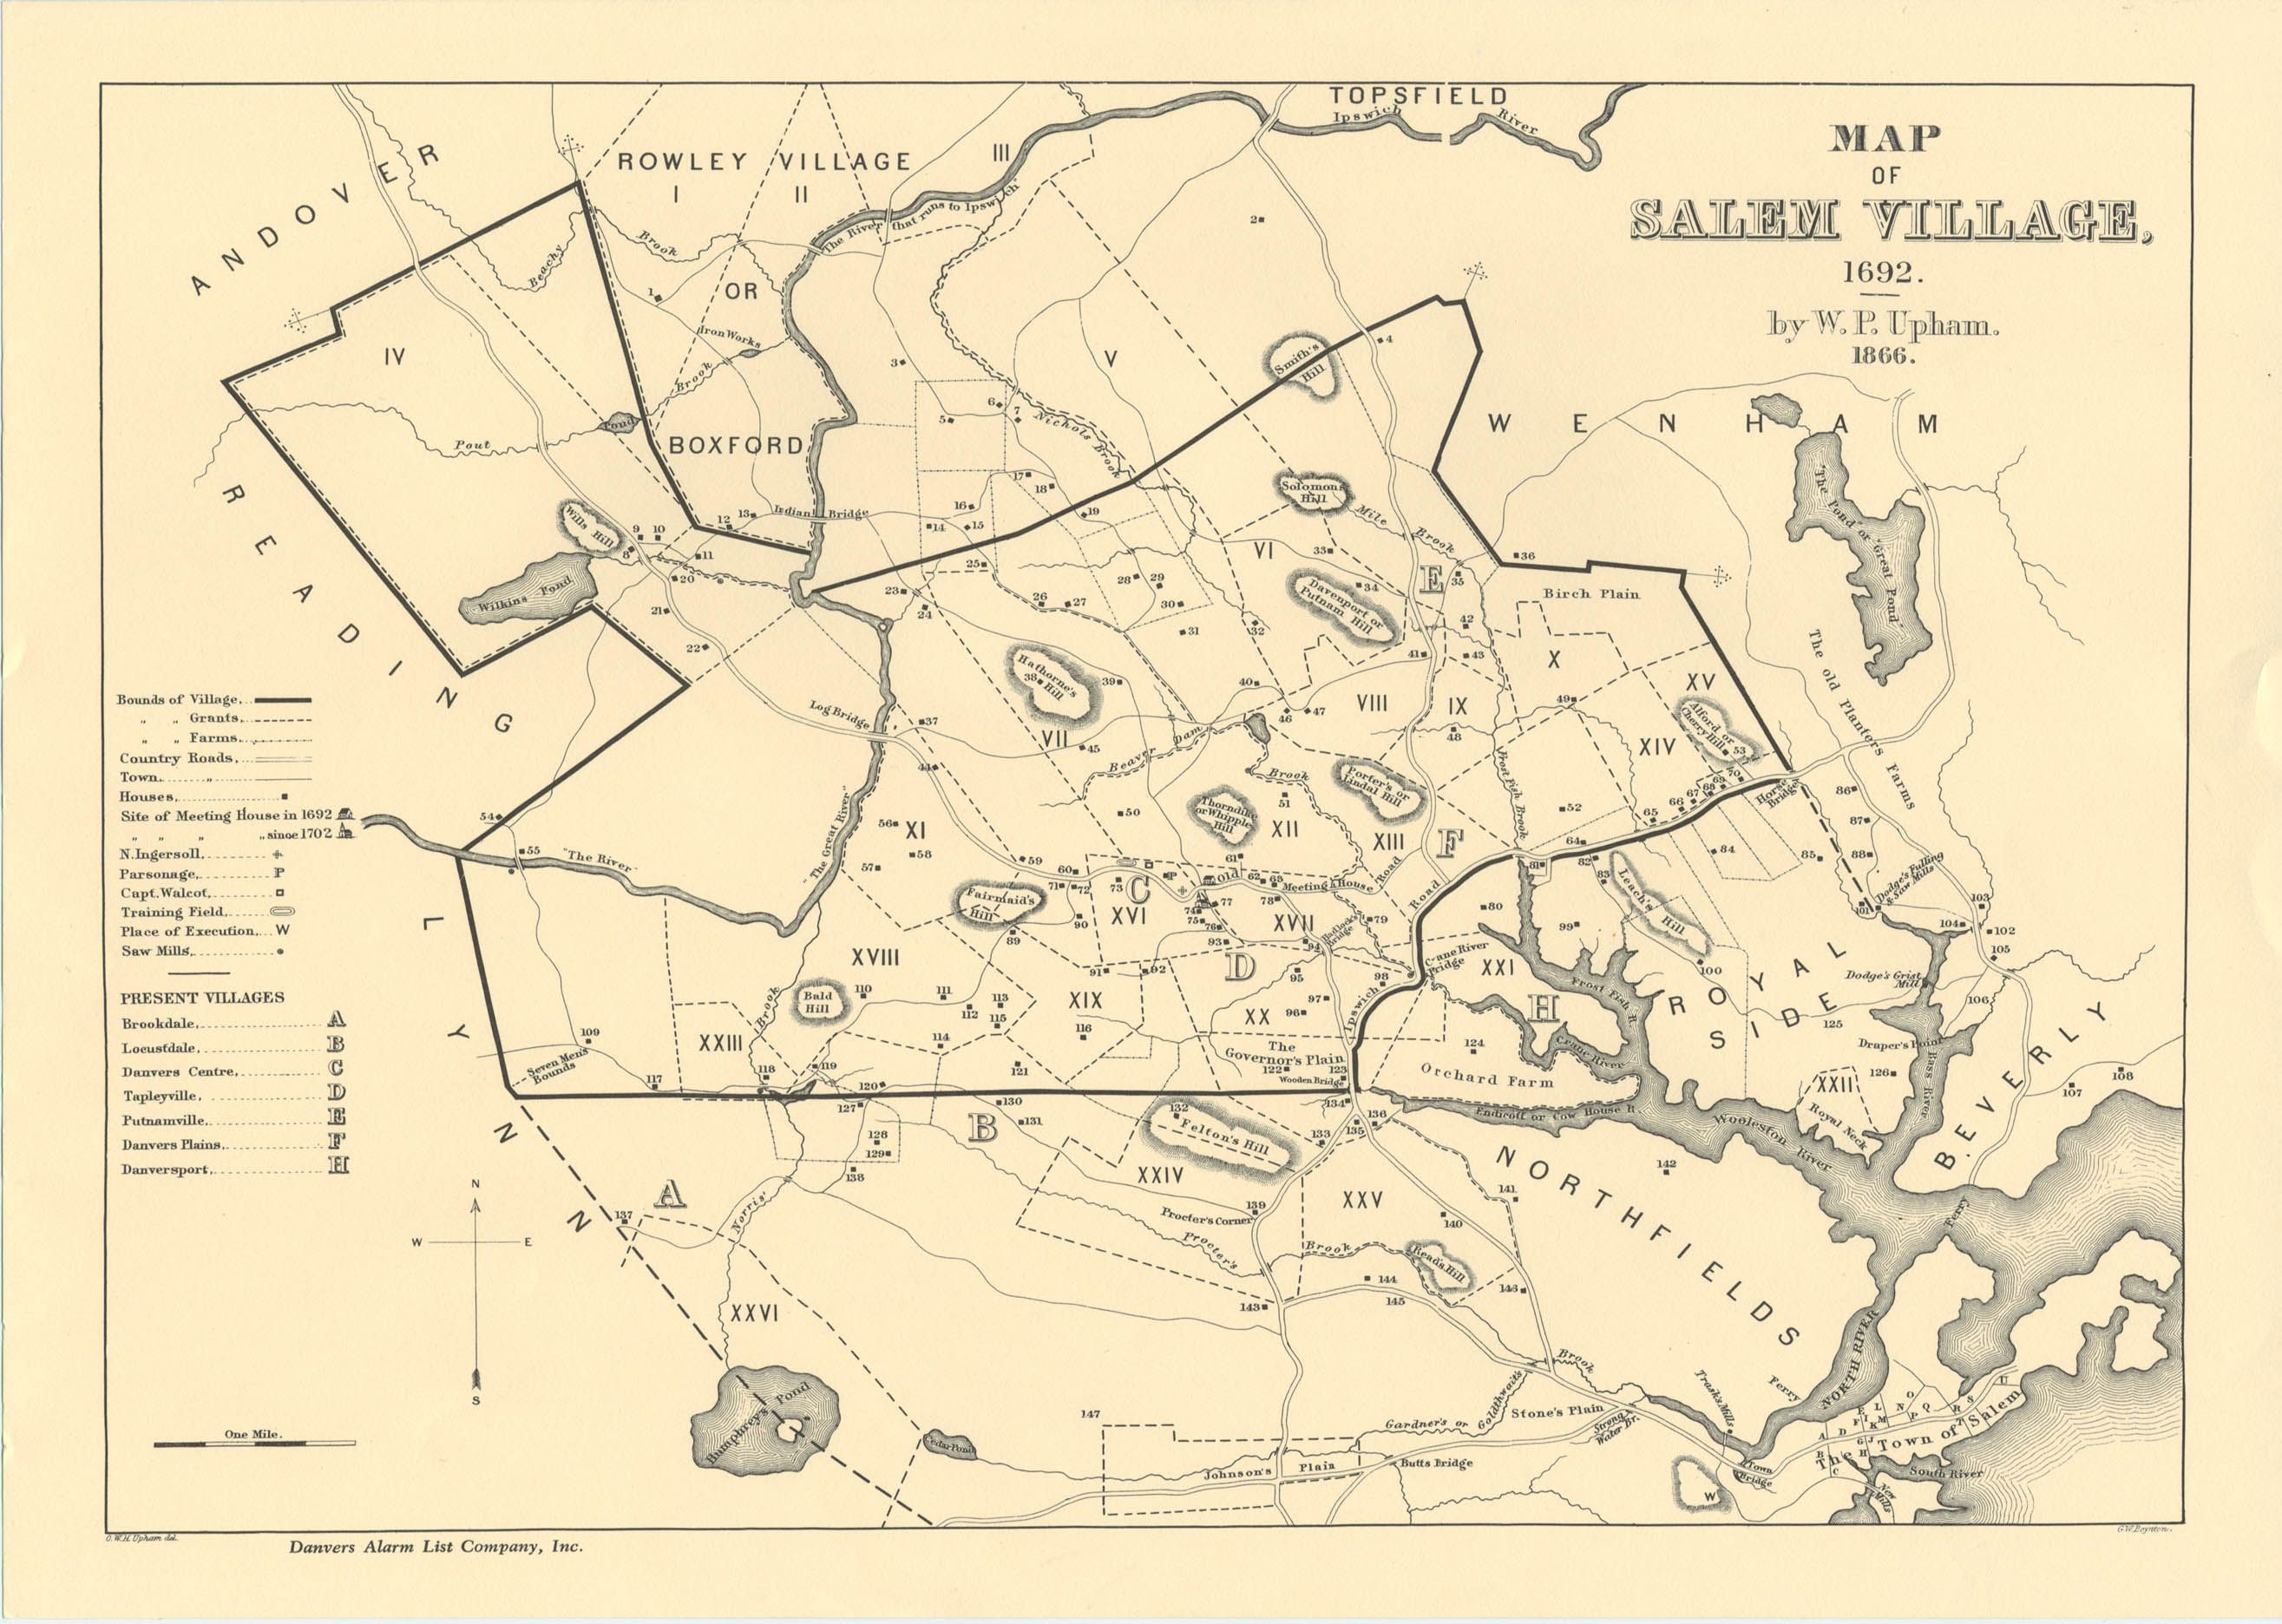 salem witch trials map Salem Village Map Where Victims And Accusers Lived salem witch trials map